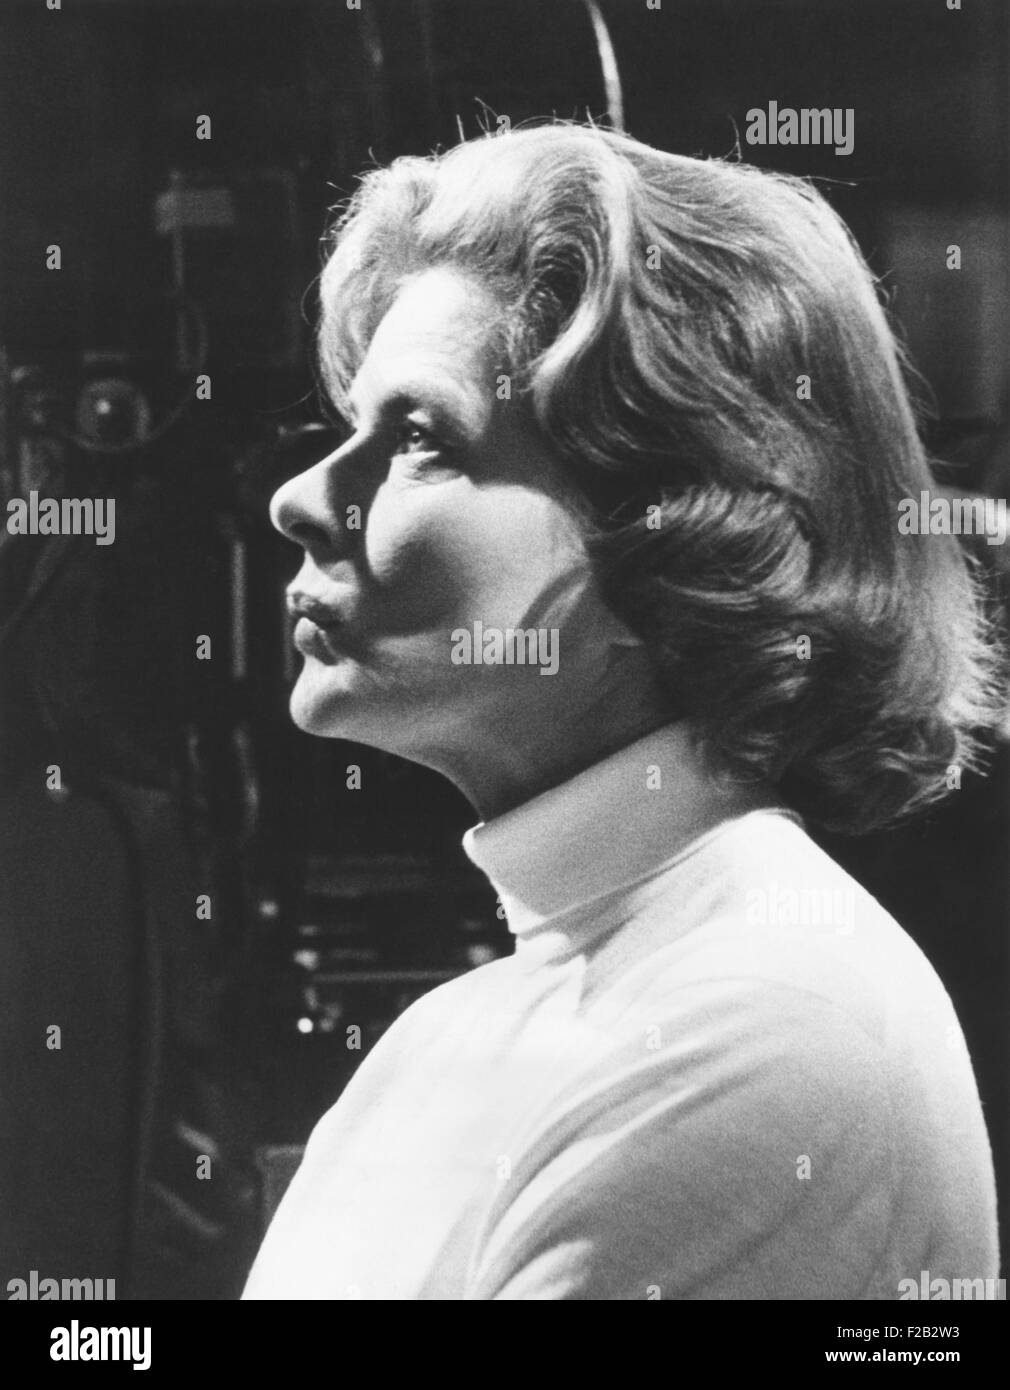 Ingrid Bergman on the set of CACTUS FLOWER, in April 1969. It was the first film she made in Hollywood since JOAN - Stock Image